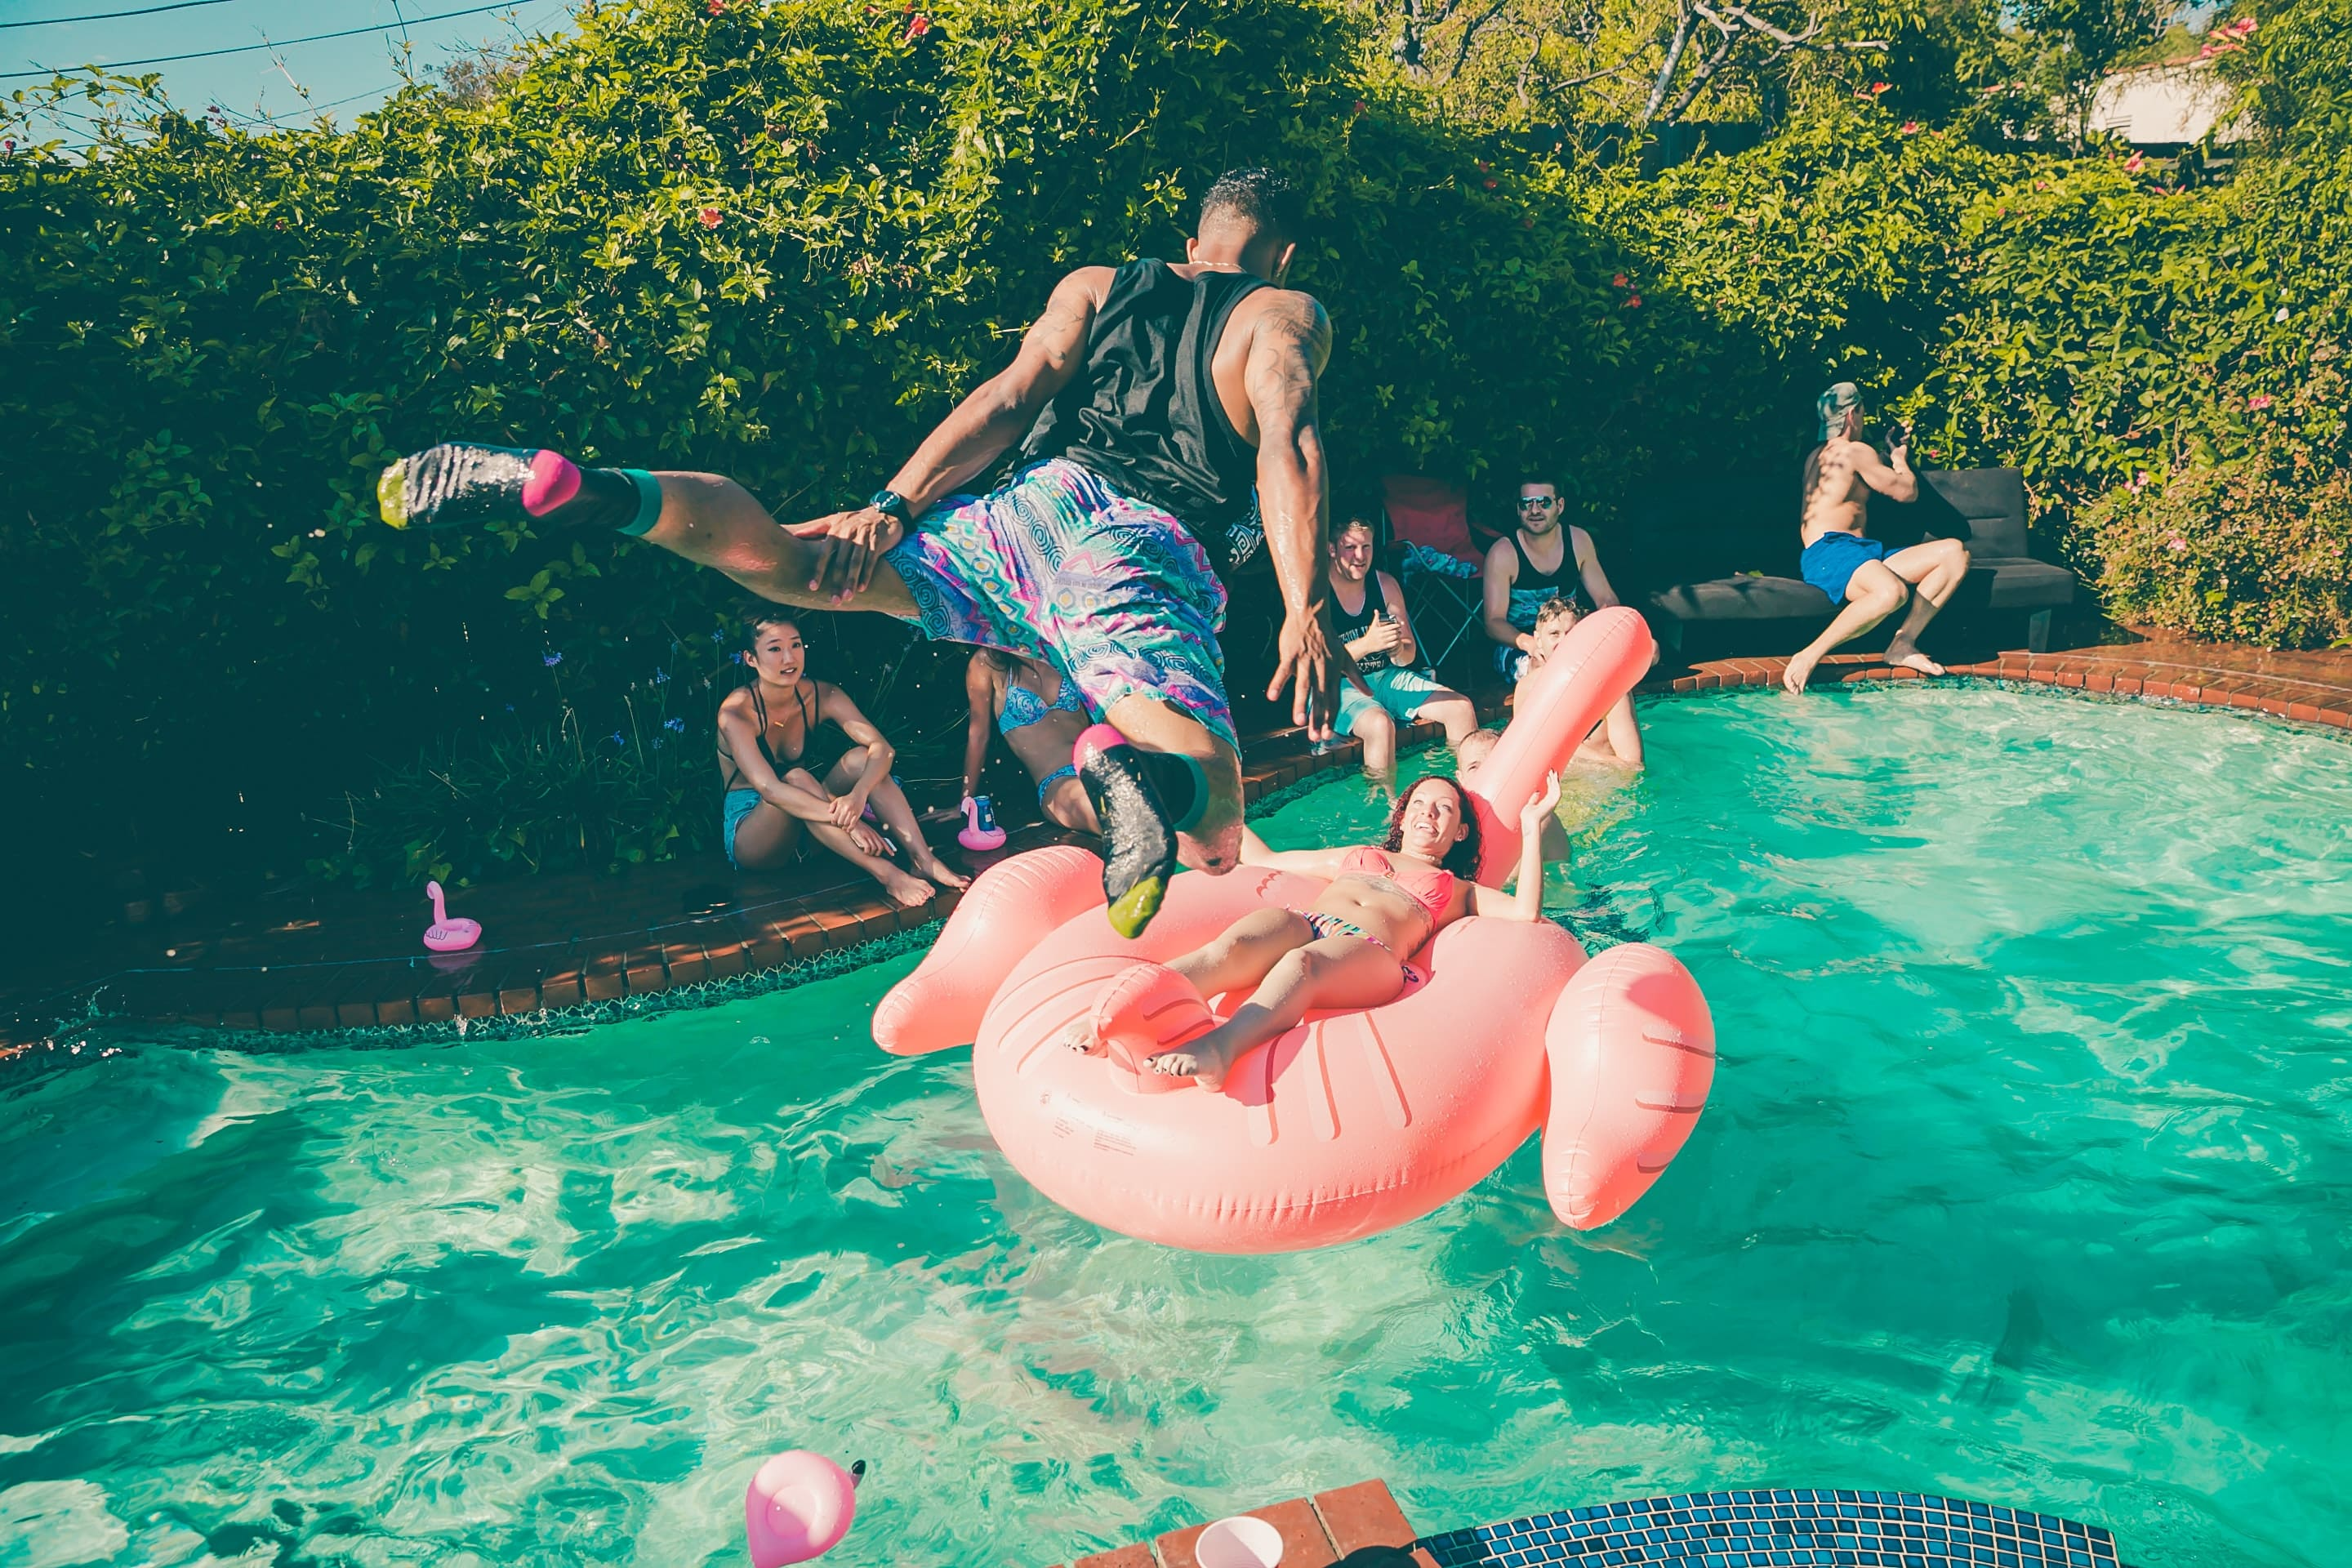 a group of friends making party in a beautiful pool